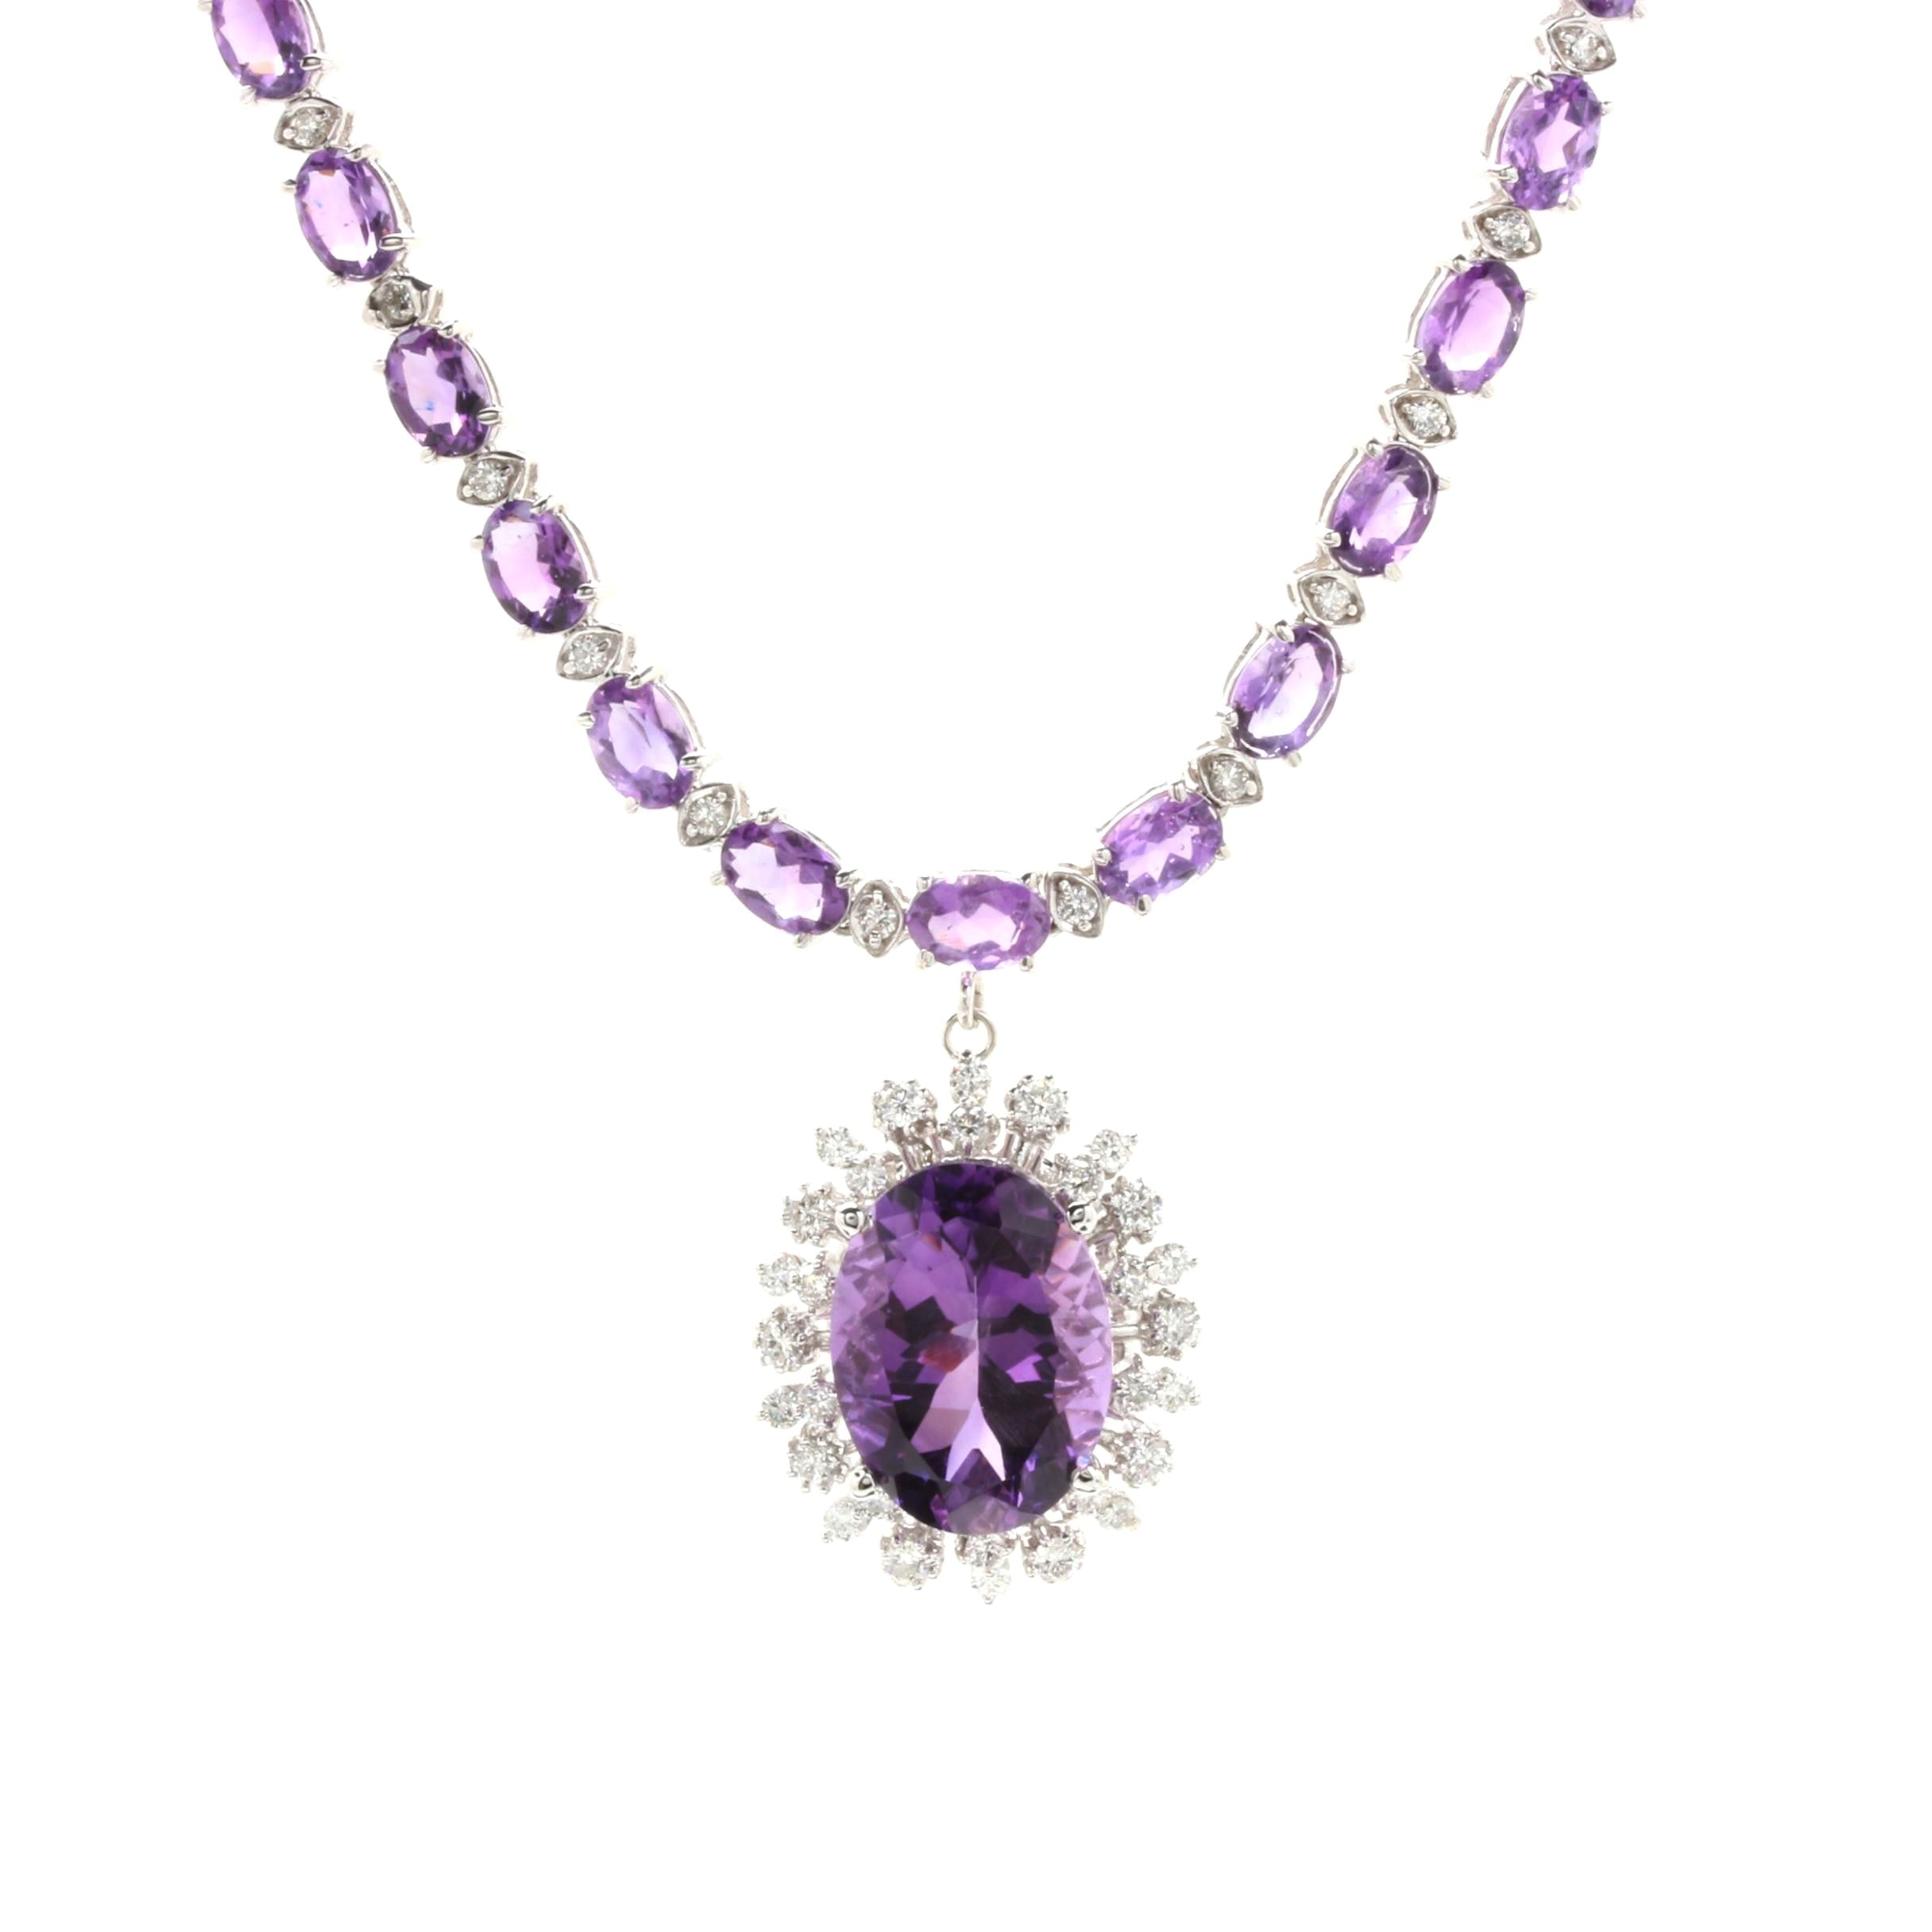 14K White Gold 8.33 CT Amethyst and 2.08 CTW Diamond Pendant Necklace